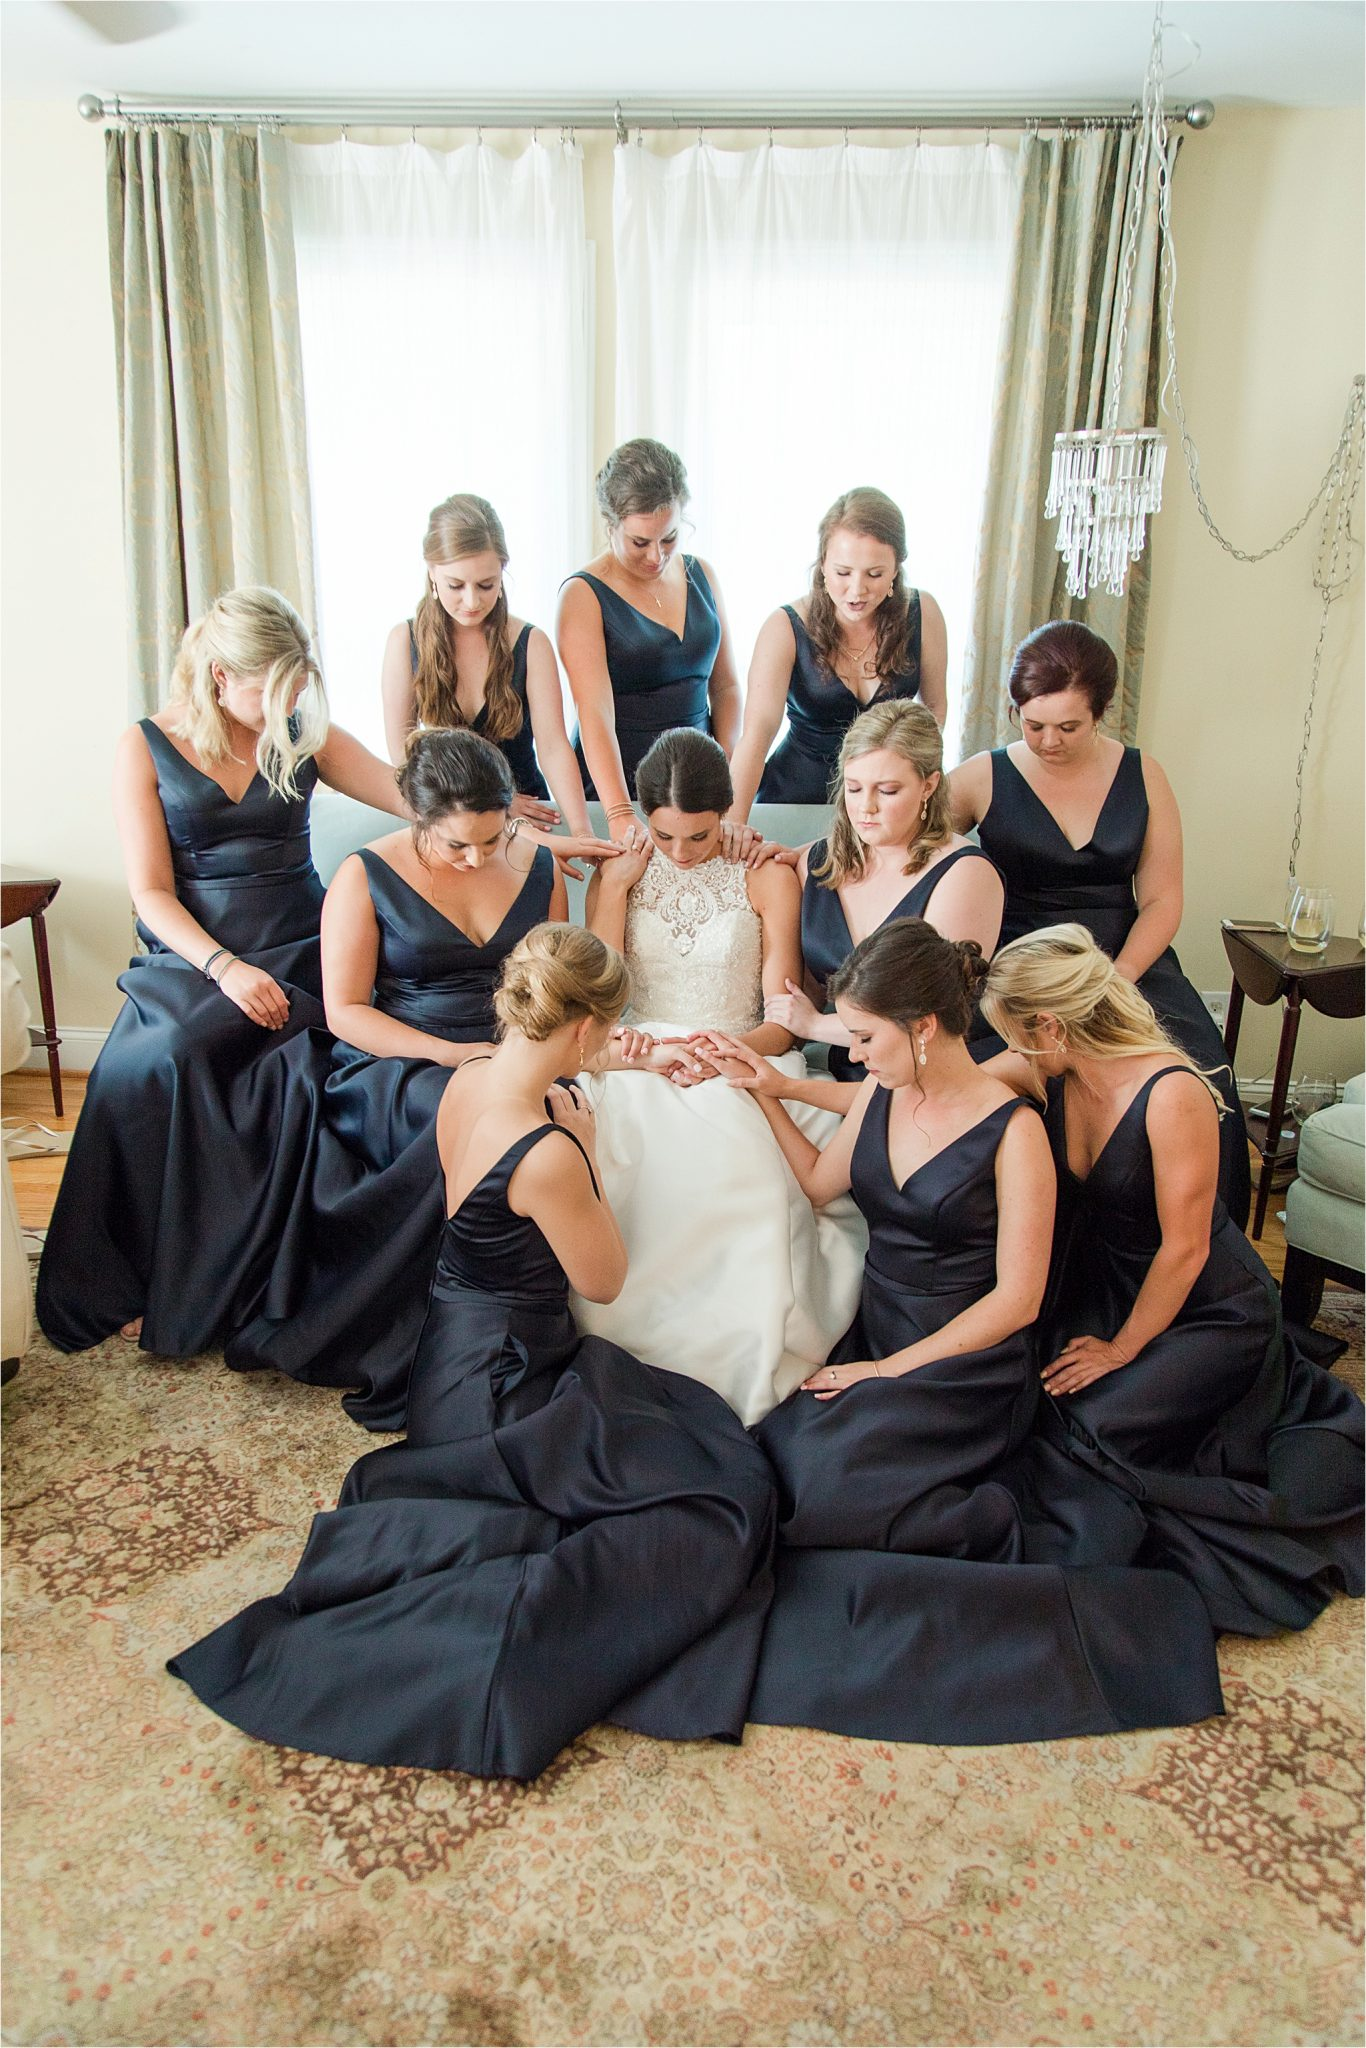 Sonnet House, Birmingham Alabama Wedding Photographer, Bridal portrait, Bride and bridesmaids